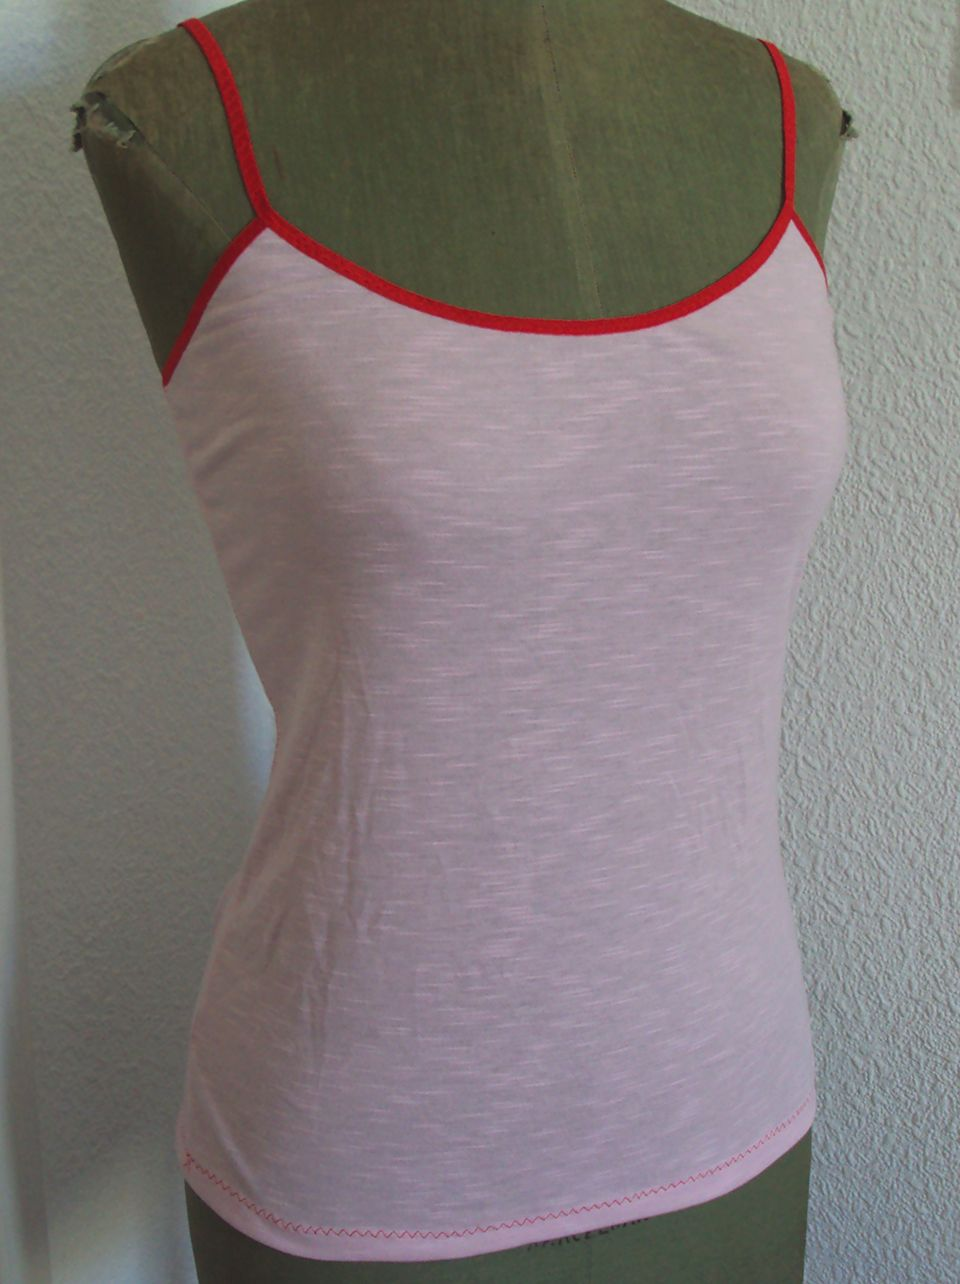 Free Downloadable PDF Pattern: Vest / Camisole / Singlet from 'So, Zo... What do you know?'